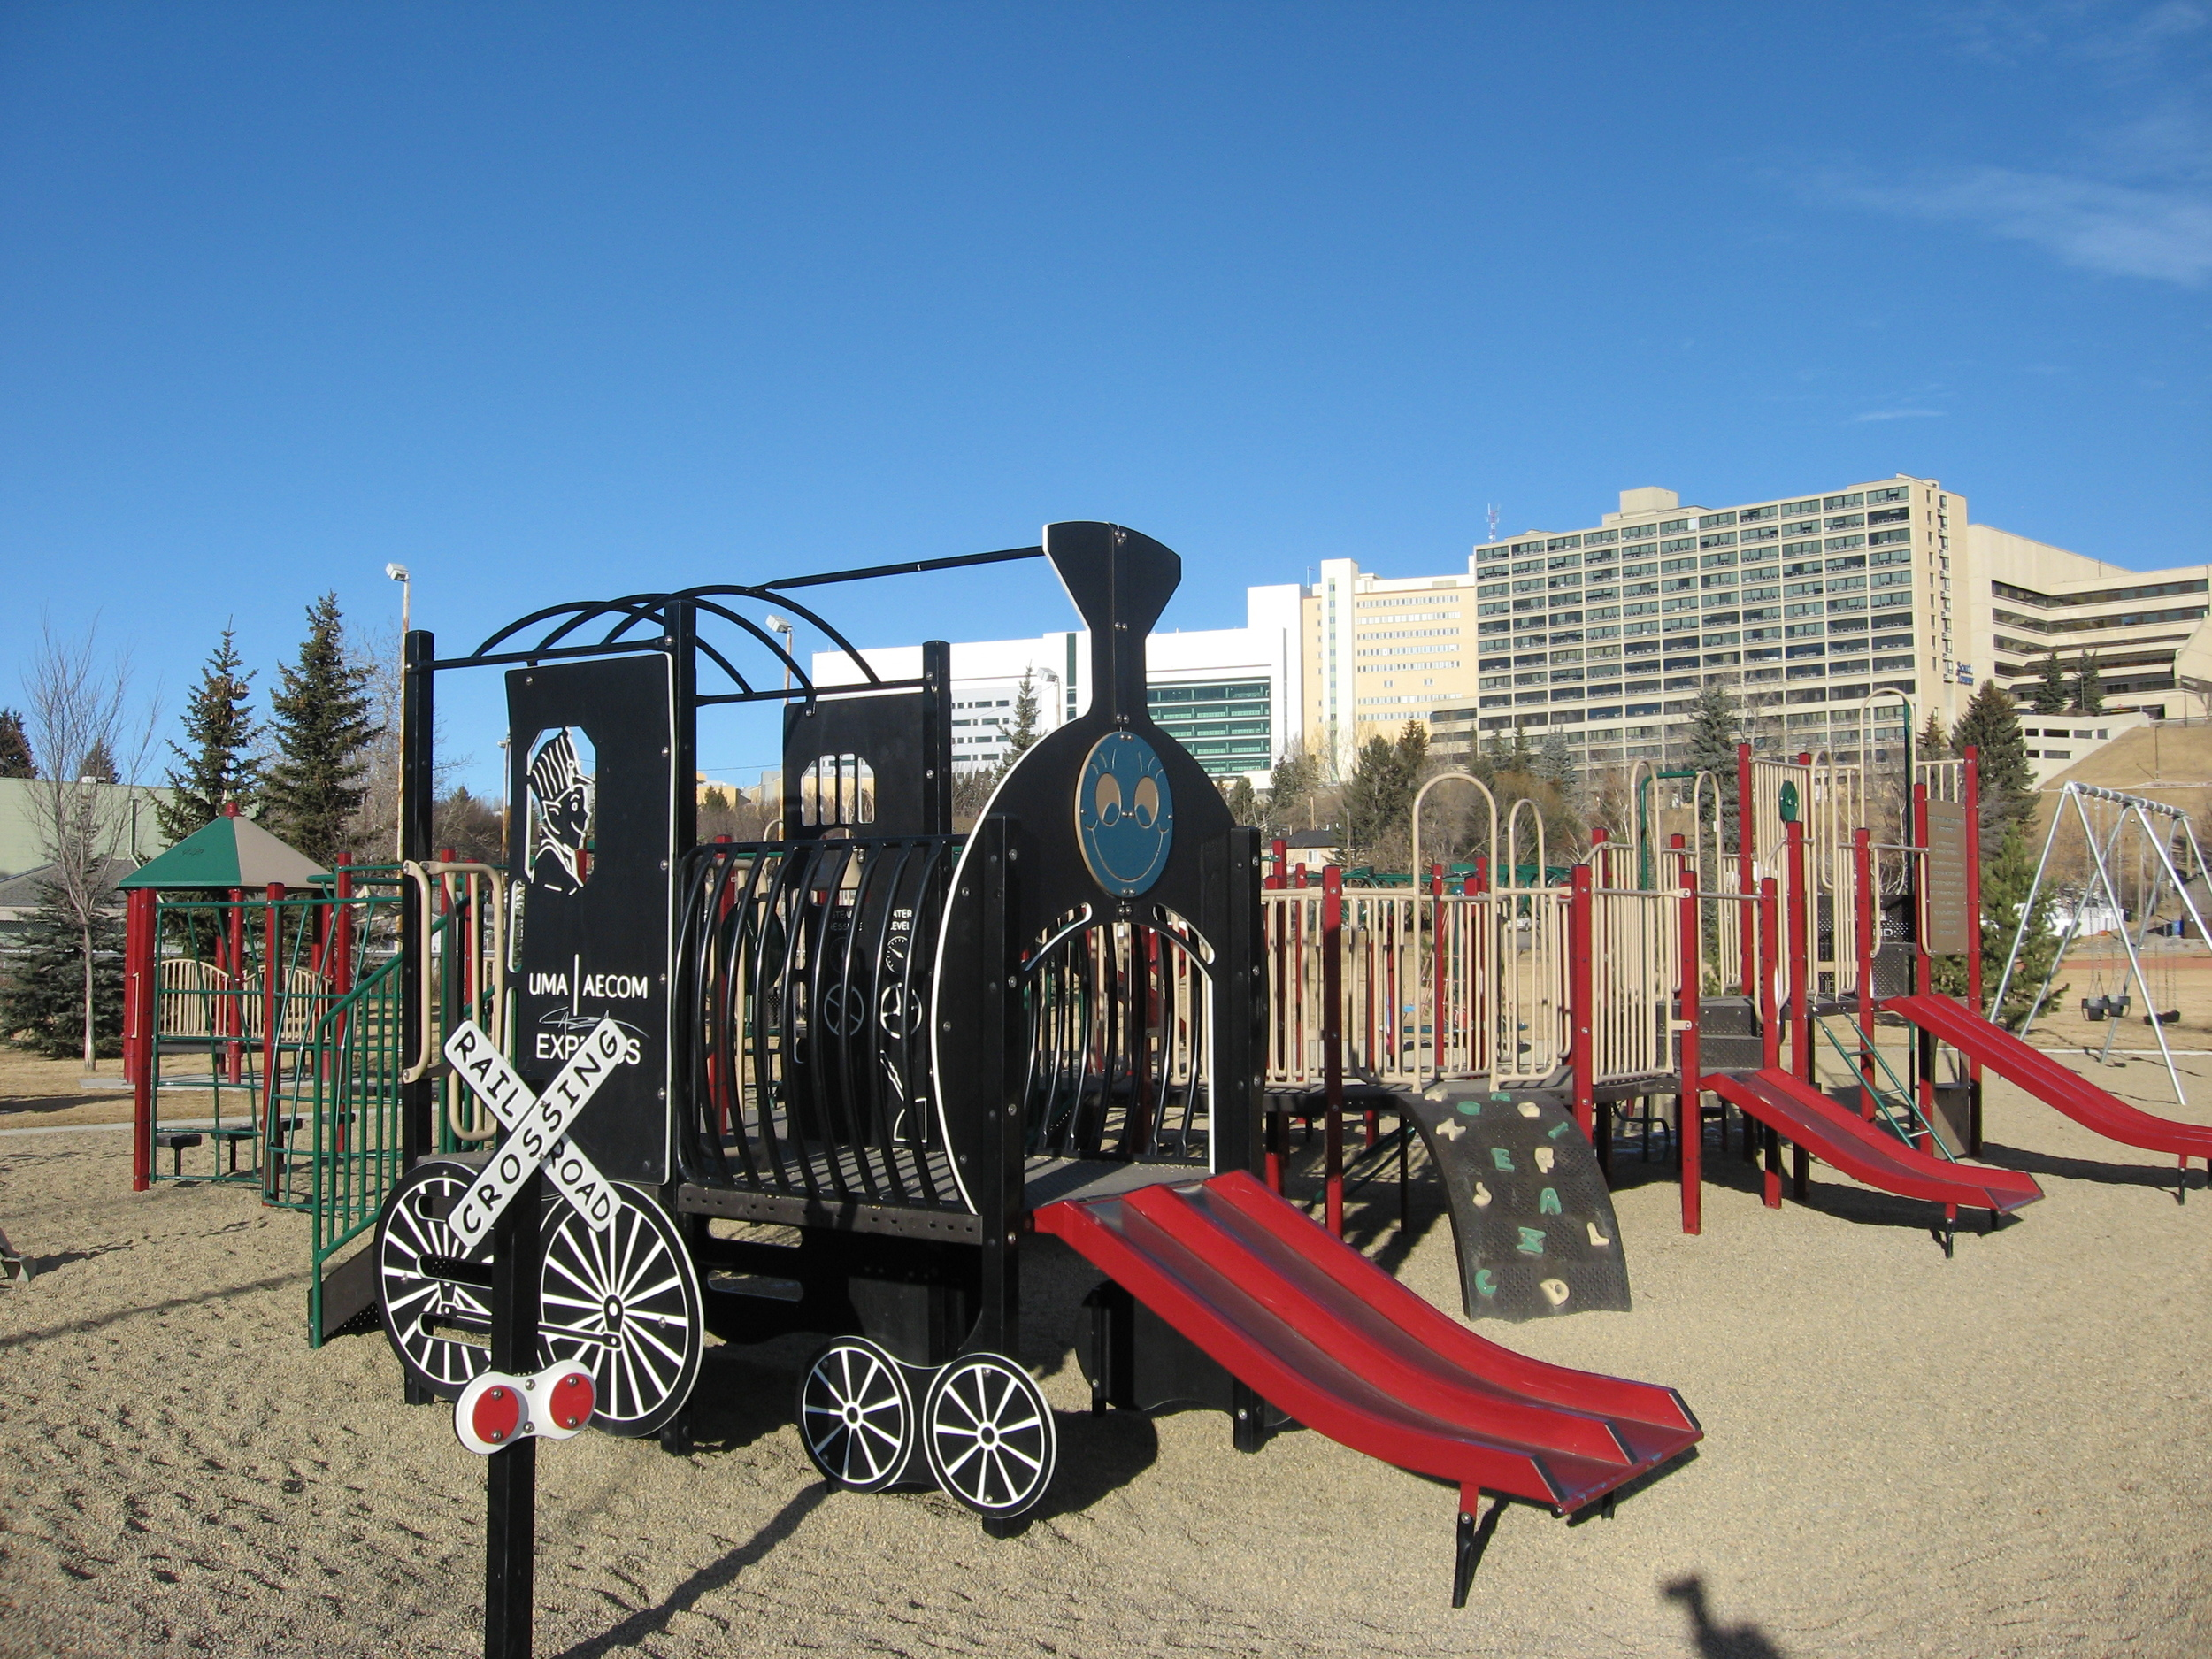 Wonderful new playgrounds are being installed in established neighbourhood as a result of young professional families moving into them. These GABEsters are willing to invest their own money and fundraise to improve the parks, playgrounds and recreation centres that are near the end of their lifecycle.